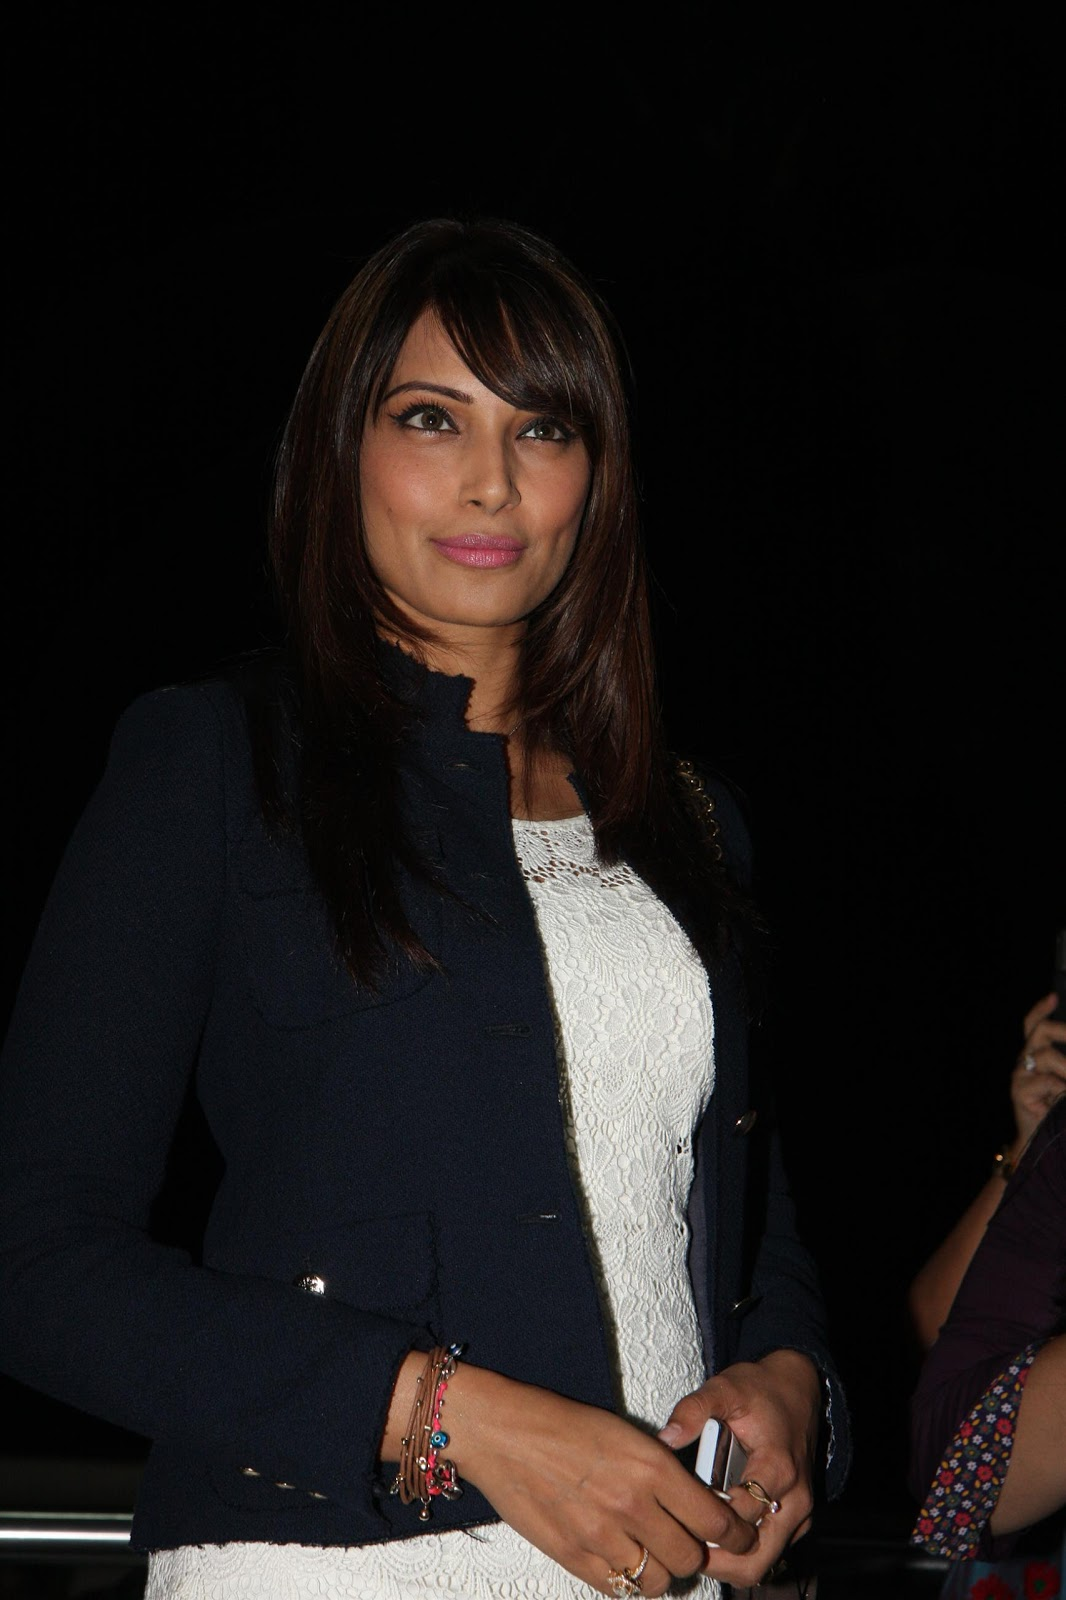 Bipasha Basu Sexy Legs Show At The 'Race 2′ Movie Premiere